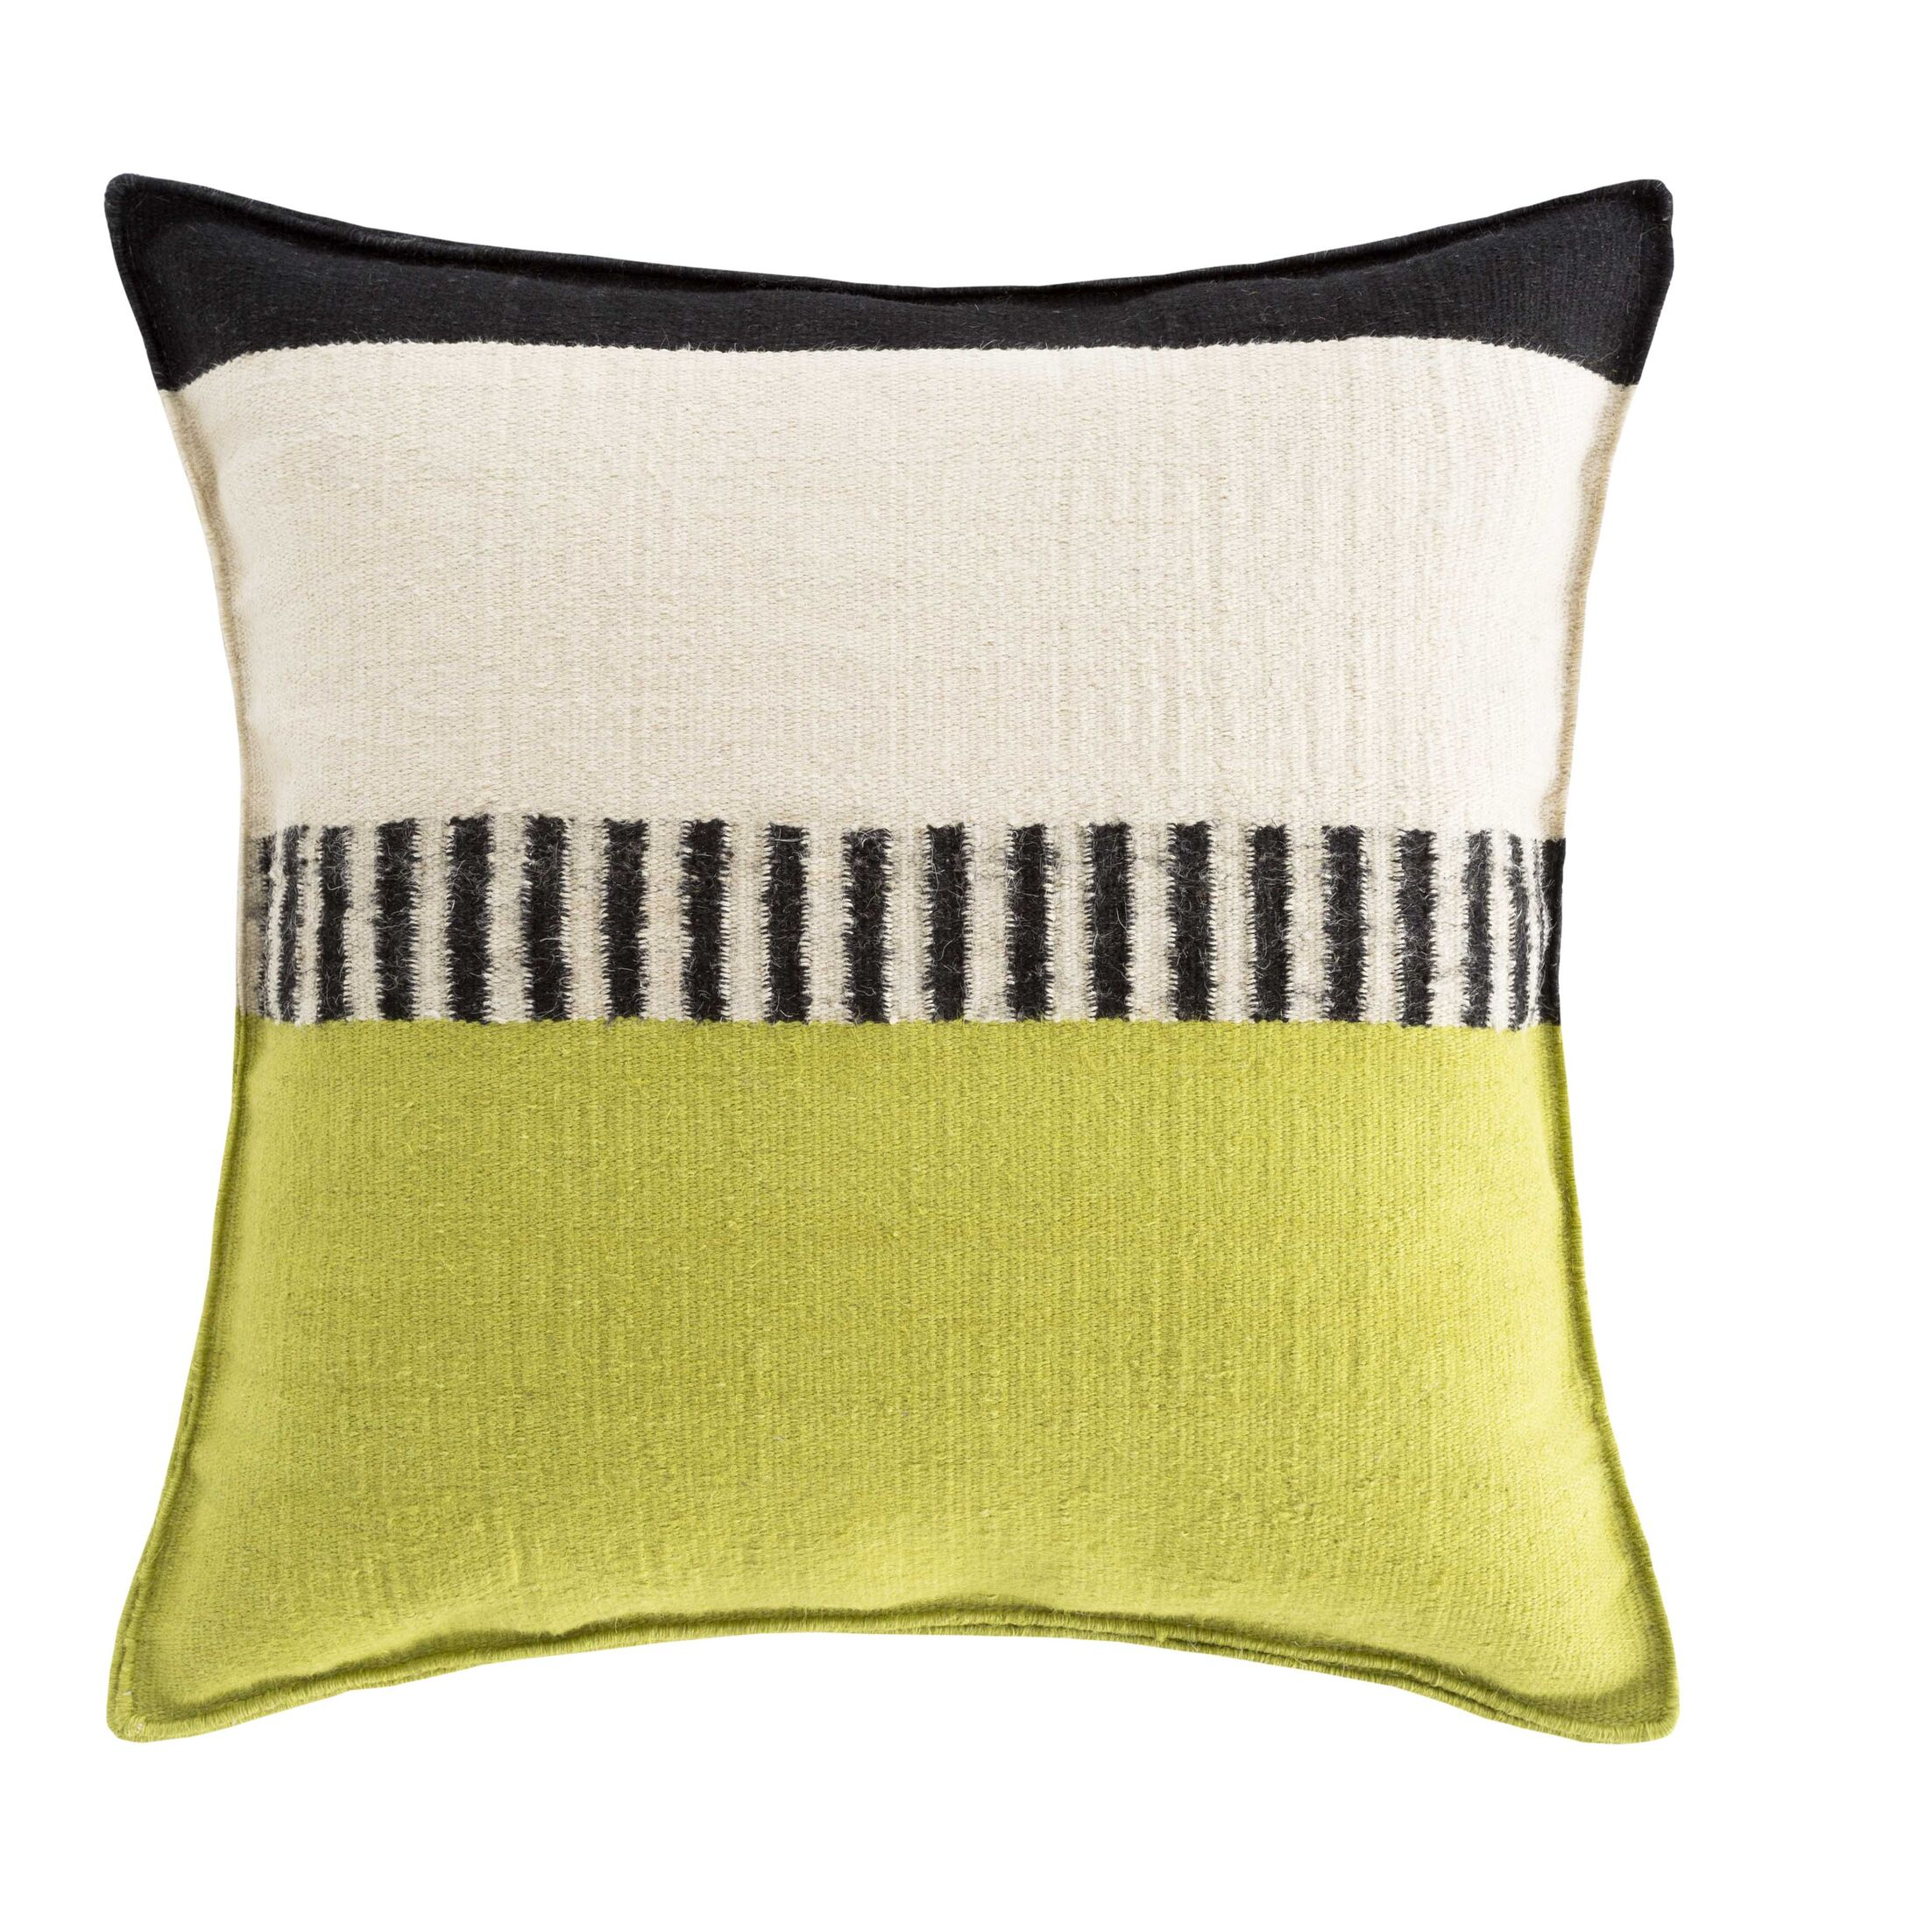 Space Rustic Chic Throw Pillow